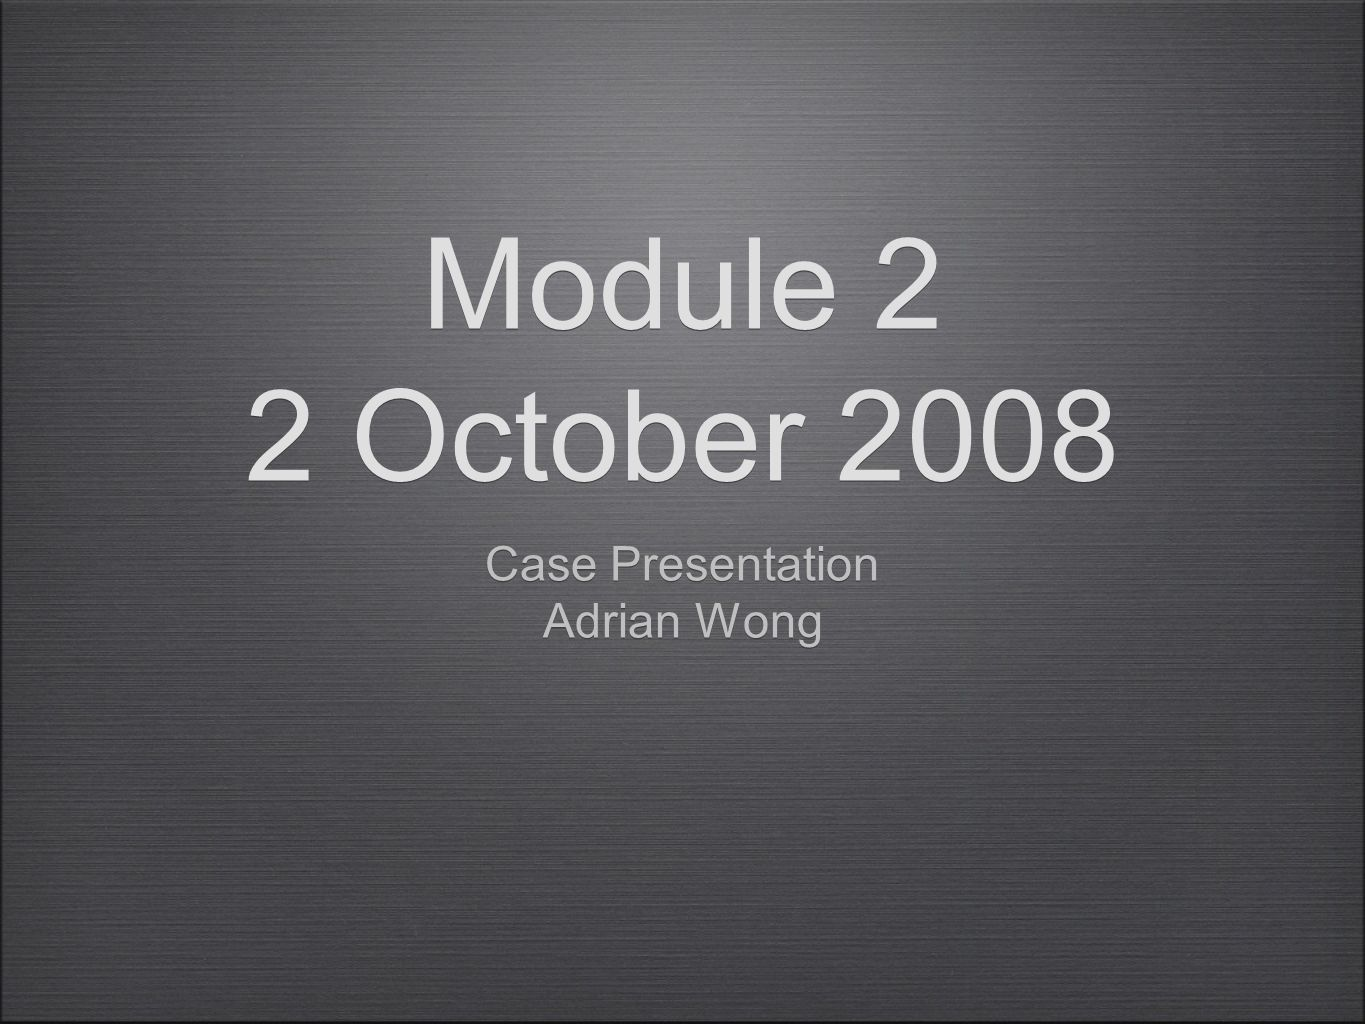 Module 2 2 October 2008 Case Presentation Adrian Wong Case Presentation Adrian Wong